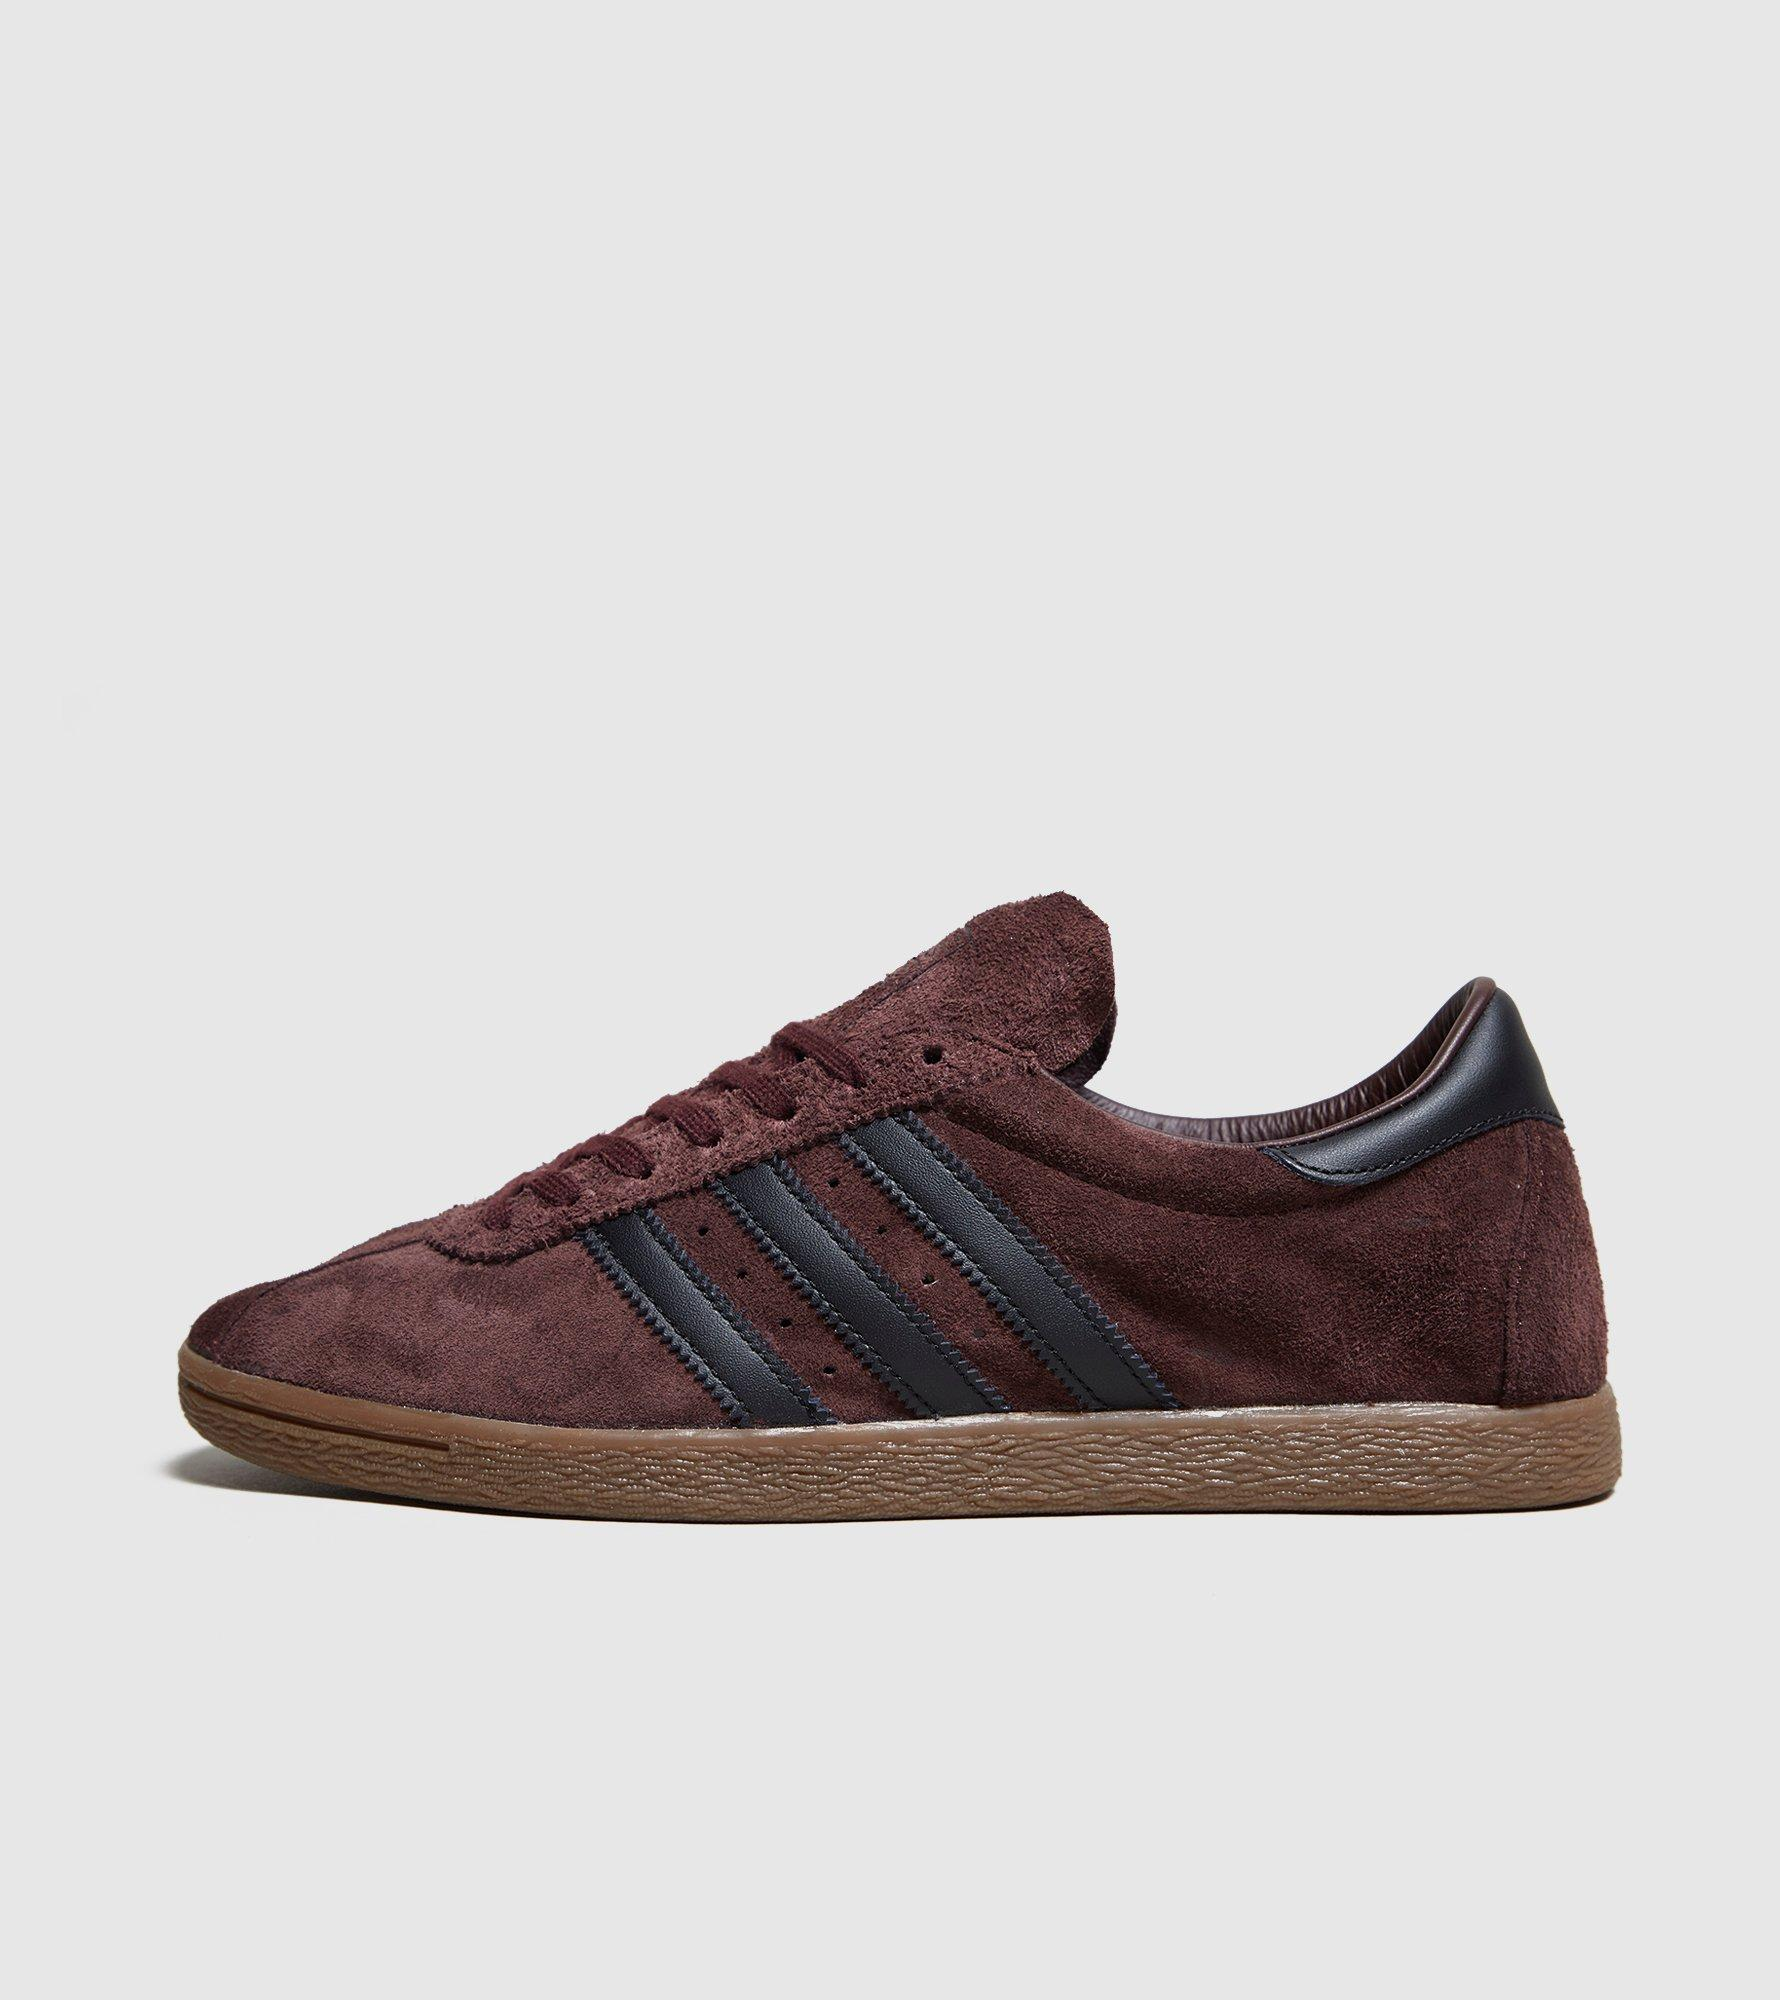 adidas gazelle red women adidas uk store online